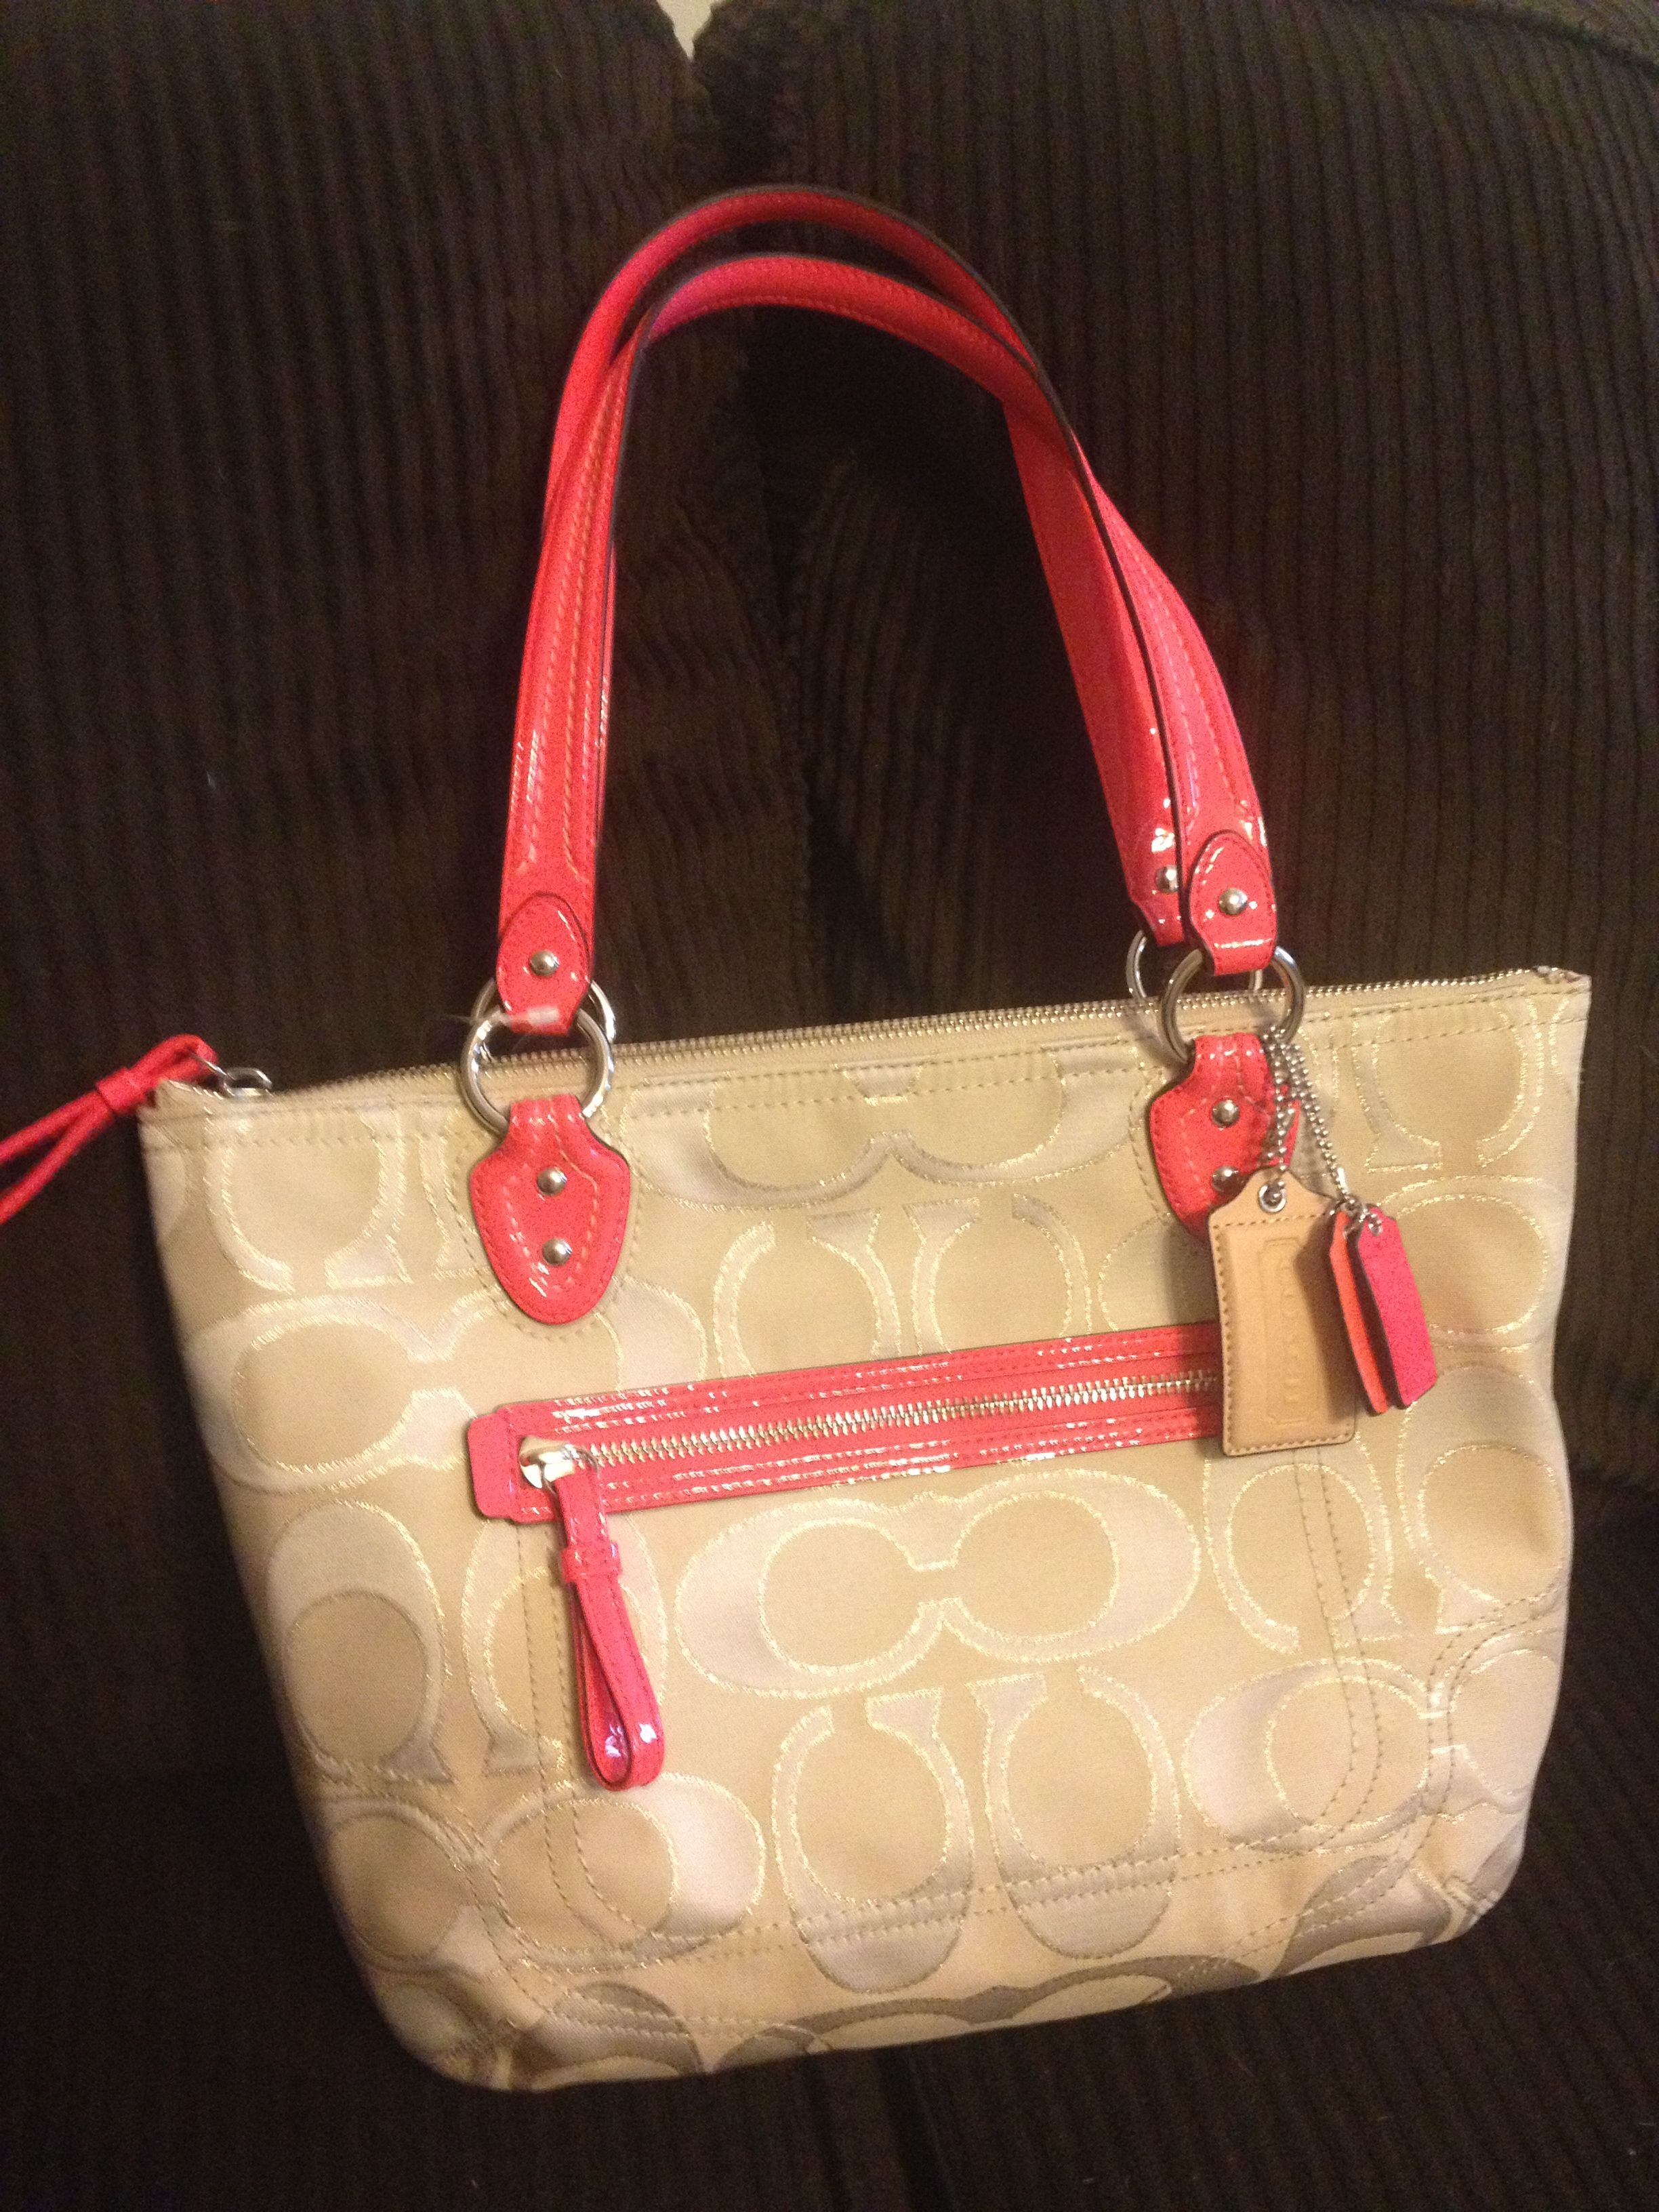 Birthday gift to myself! New Spring Coach Bag | Bags ...